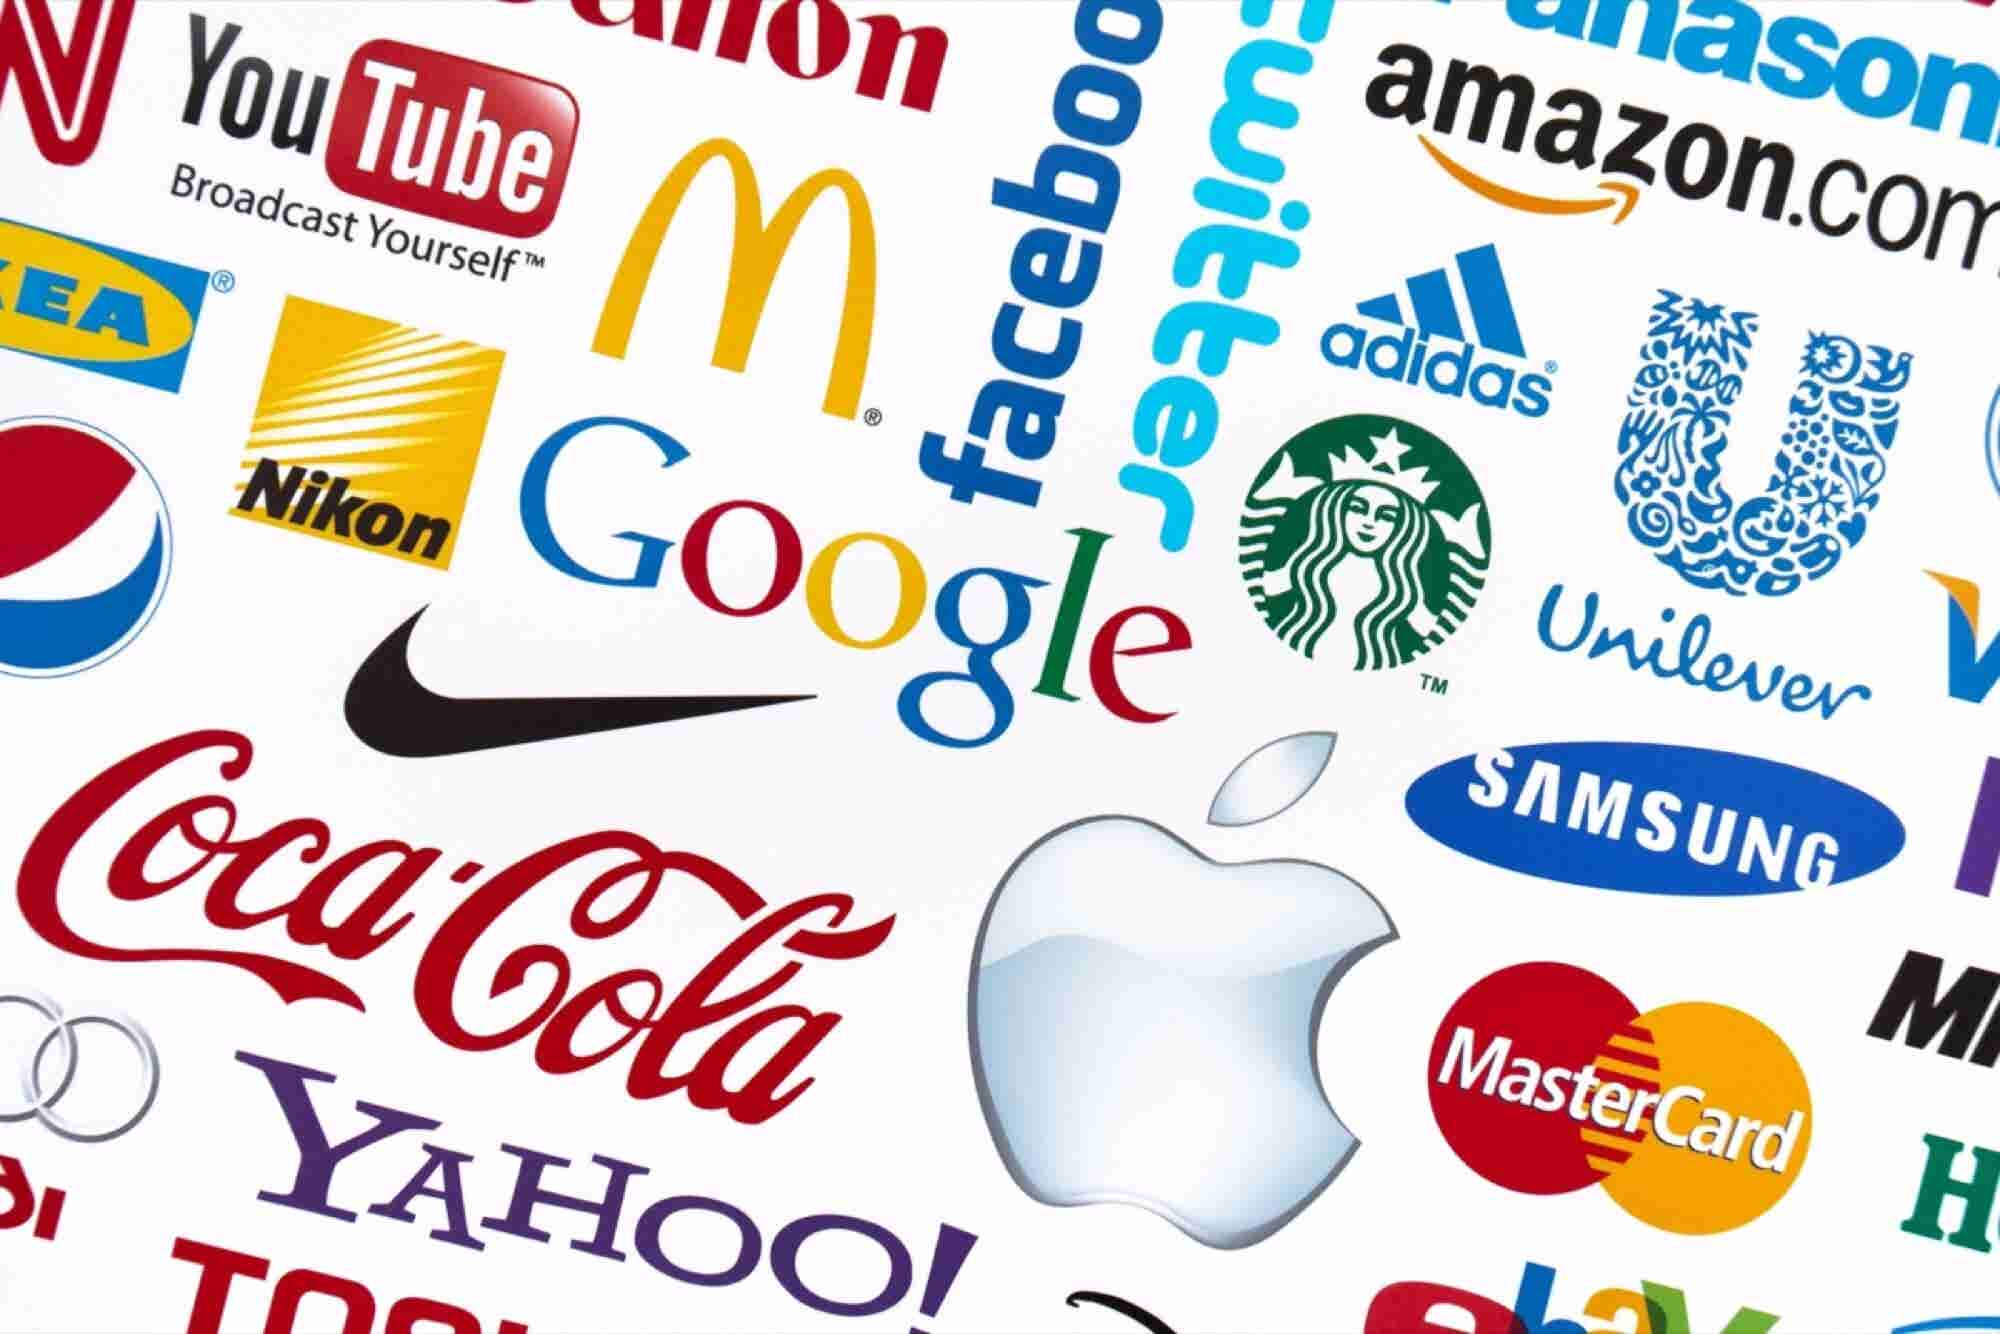 Home-grown Companies Dominate the 2018 List of Most-attractive Brands...